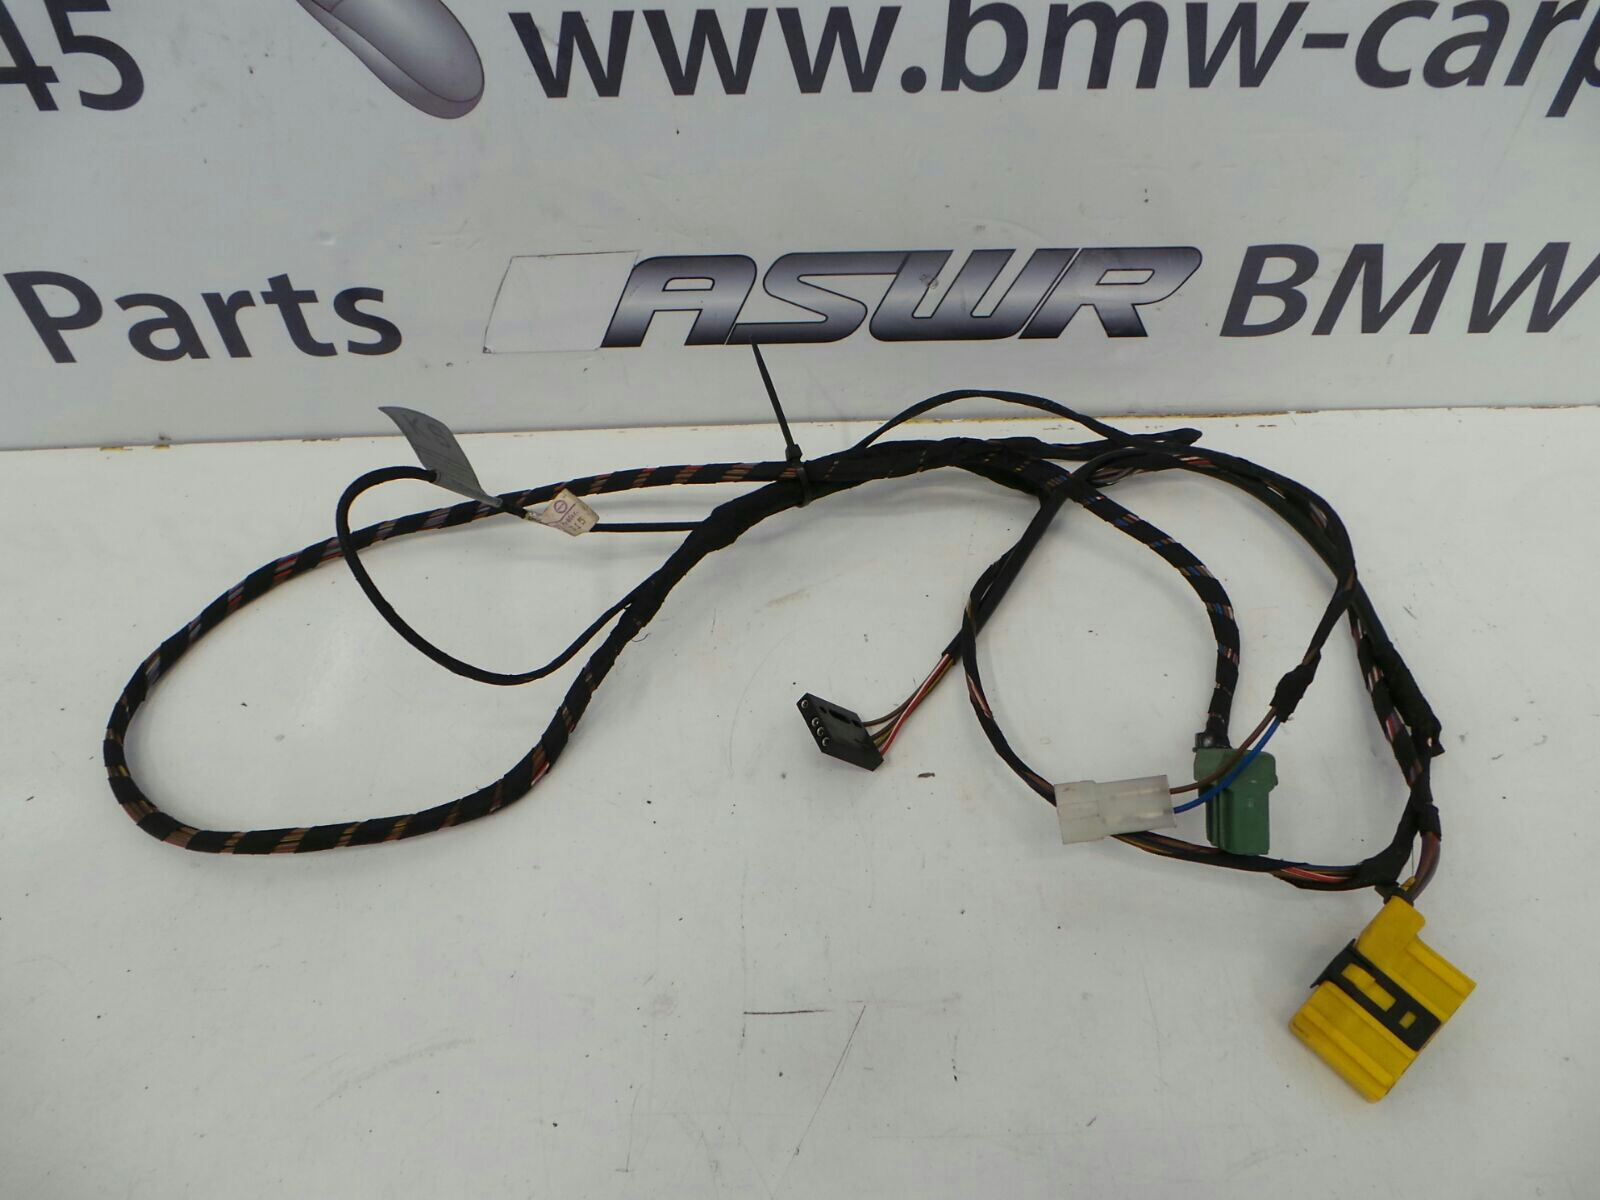 hight resolution of genuine bmw e30 325i outdoor temperature wiring loom breaking for rh bmw carparts co uk bmw e30 wiring diagram radio bmw e30 wiring diagram pdf